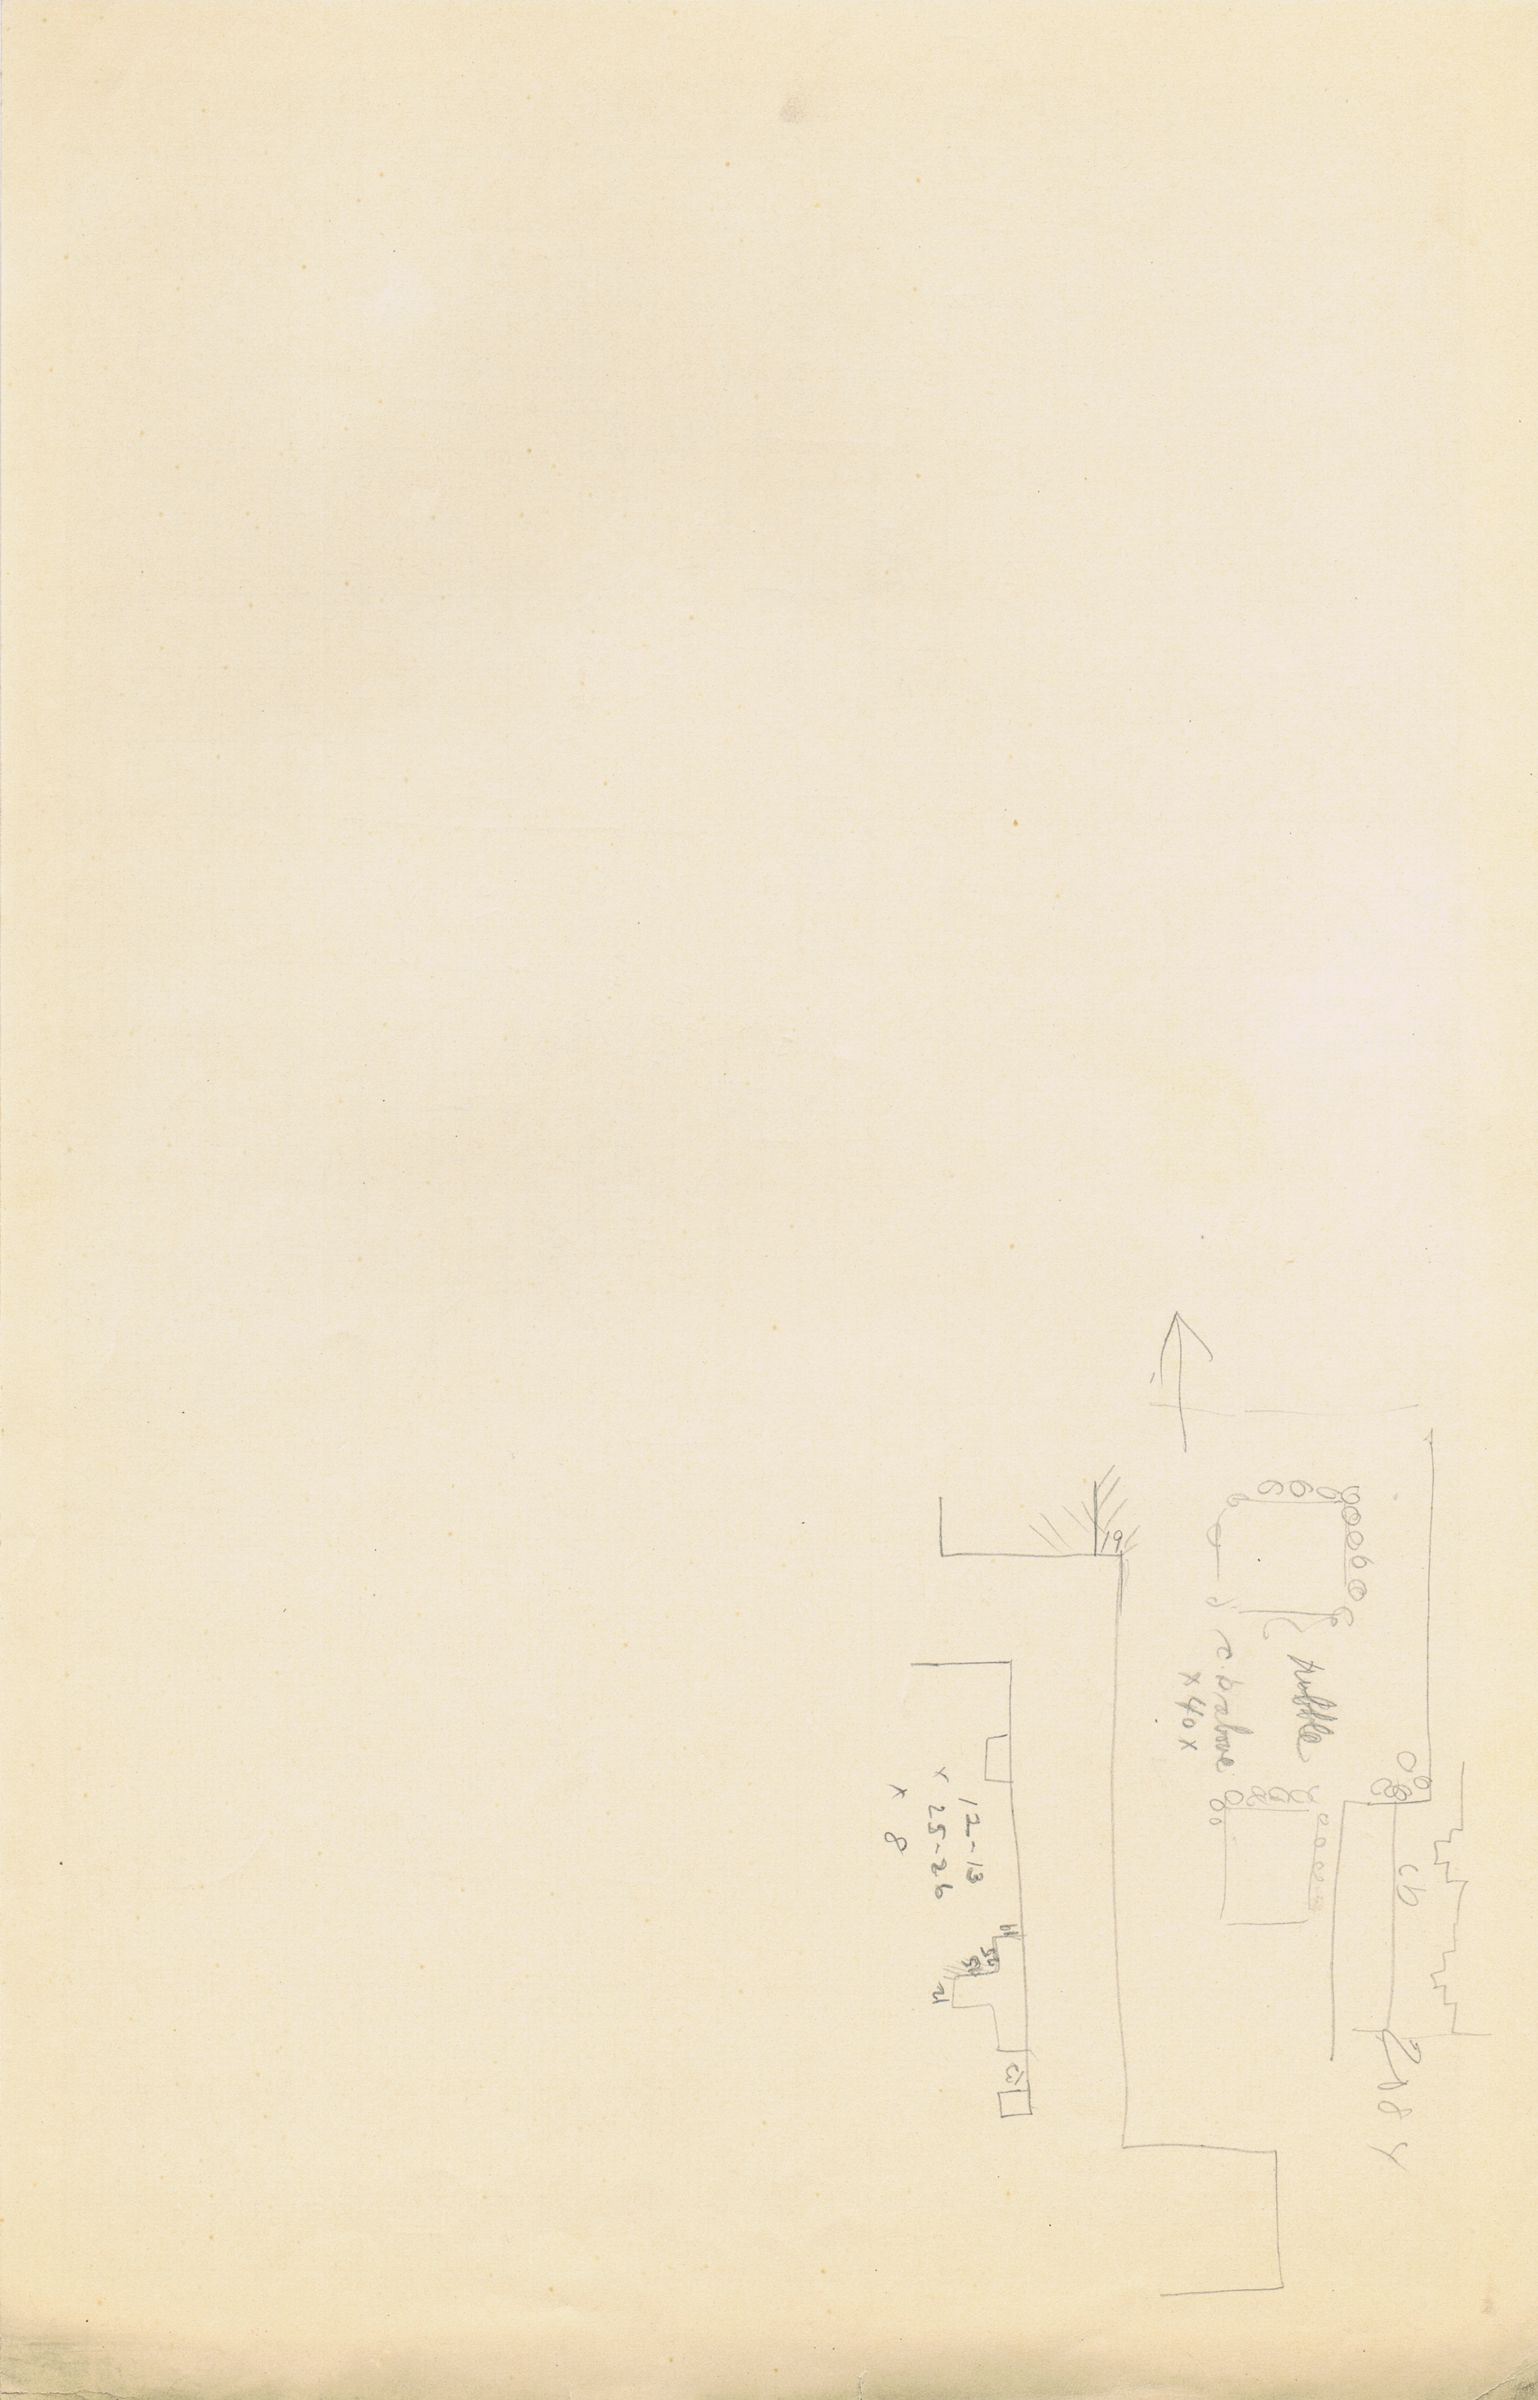 Maps and plans: Sketch plan of G 3084